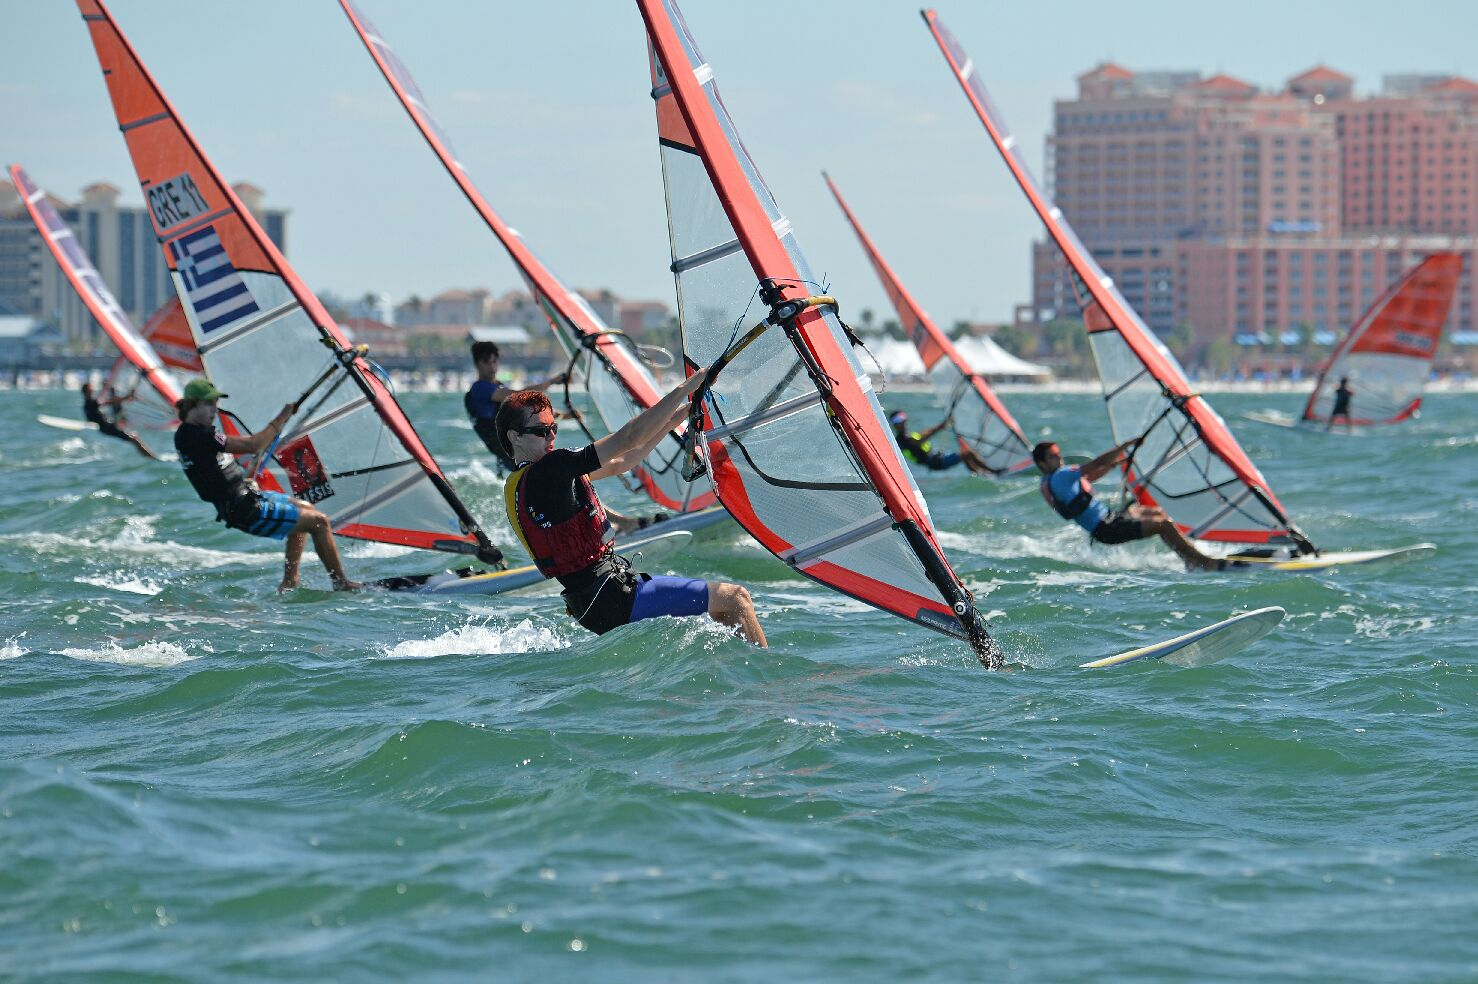 Racing close to the beach this week in Clearwater (credit: Jay Ailworth)